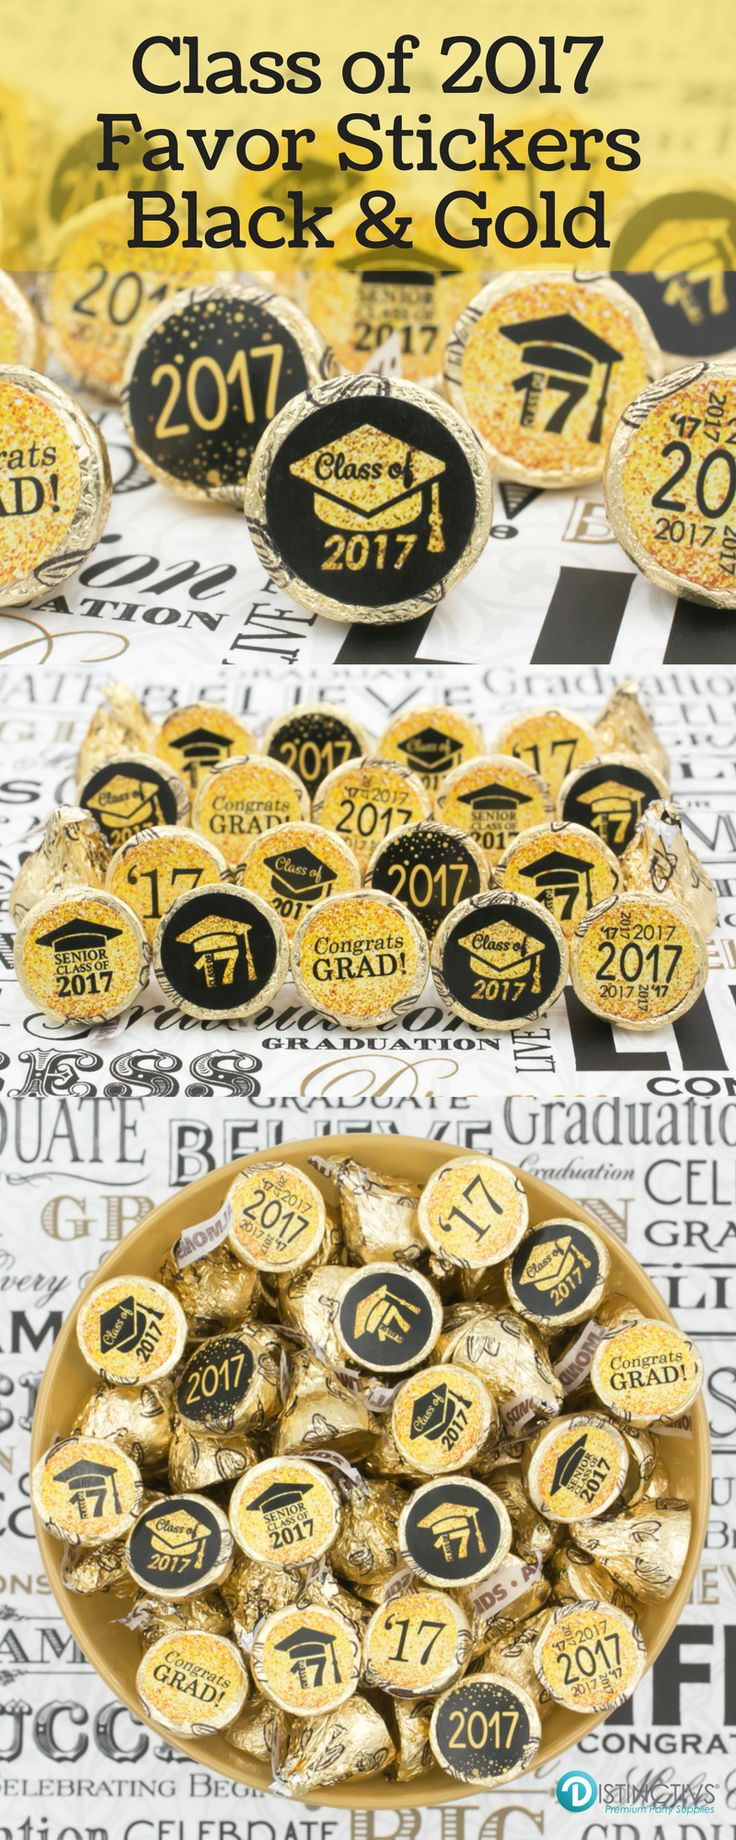 Black and Gold Class of 2017 Stickers for Candies - Kisses, Lifesavers, Peanut Butter Cups and so much more!